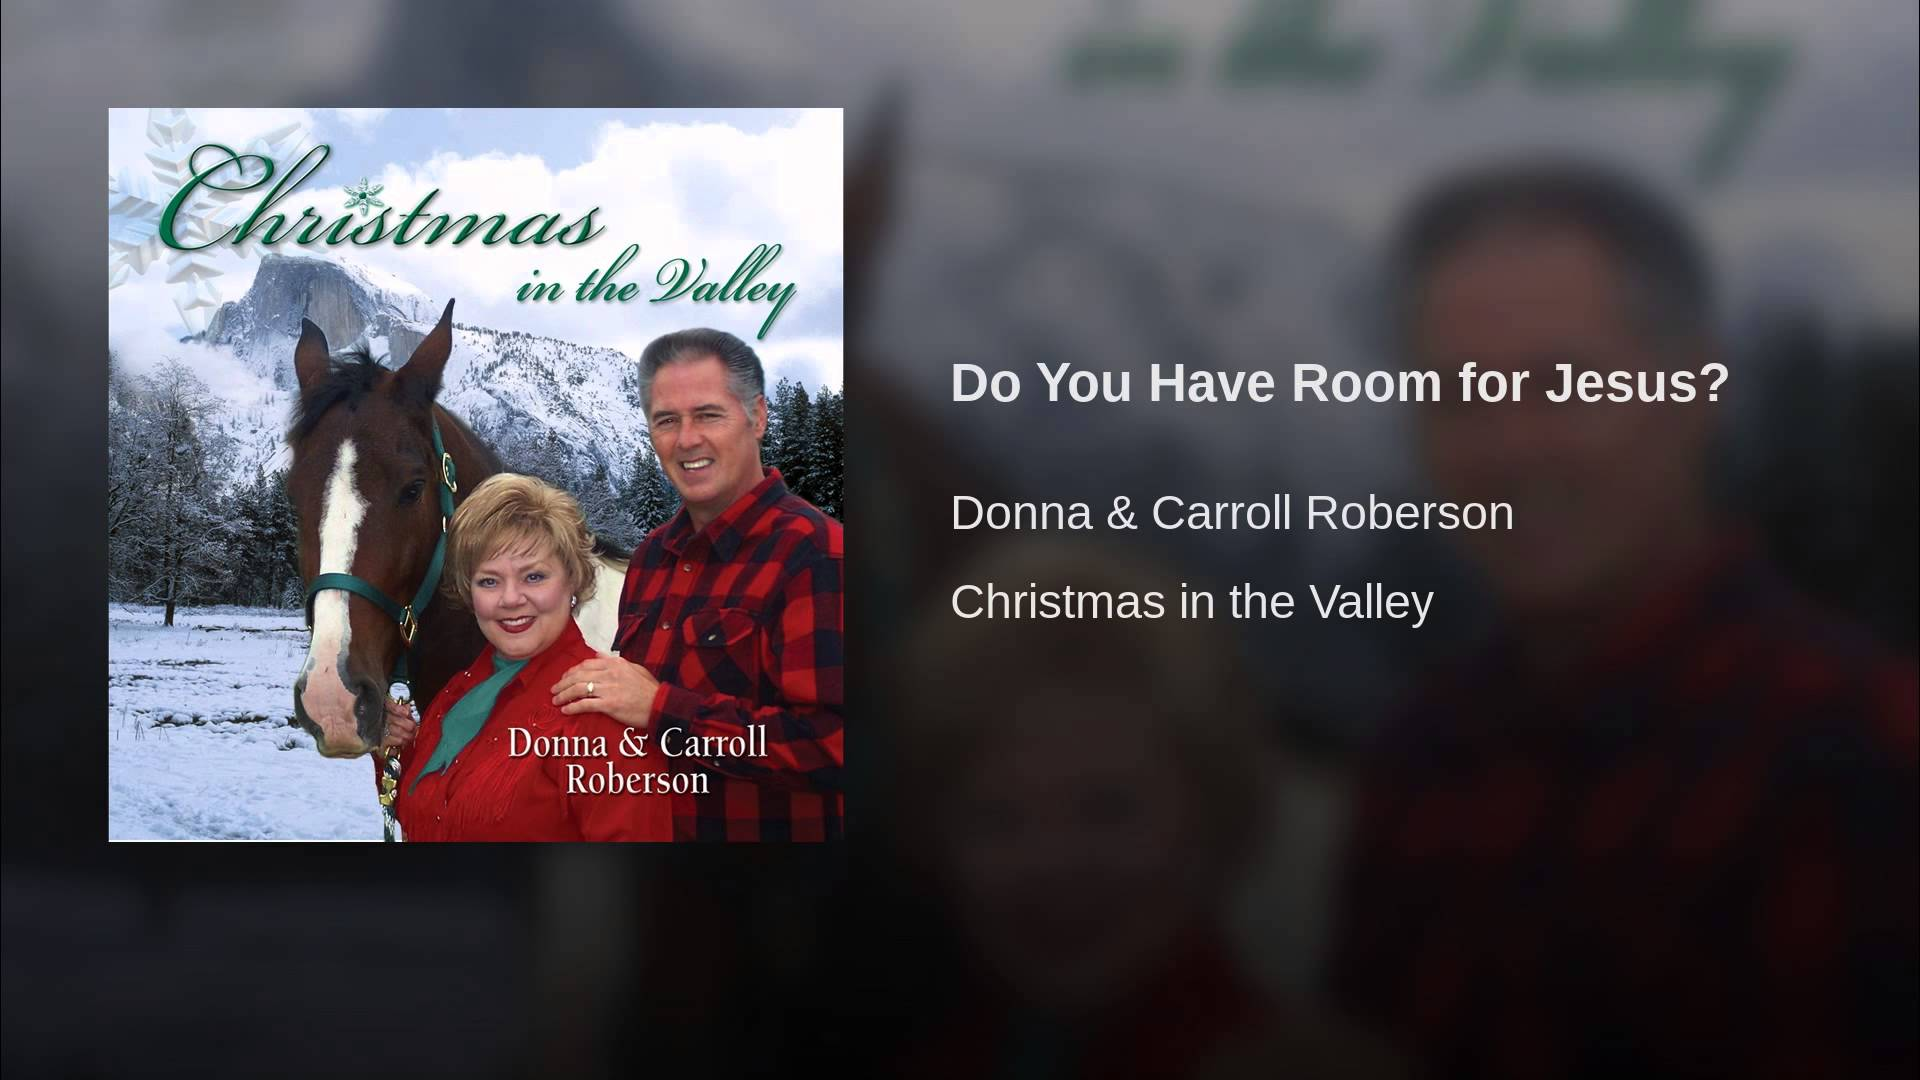 Do You Have Room for Jesus